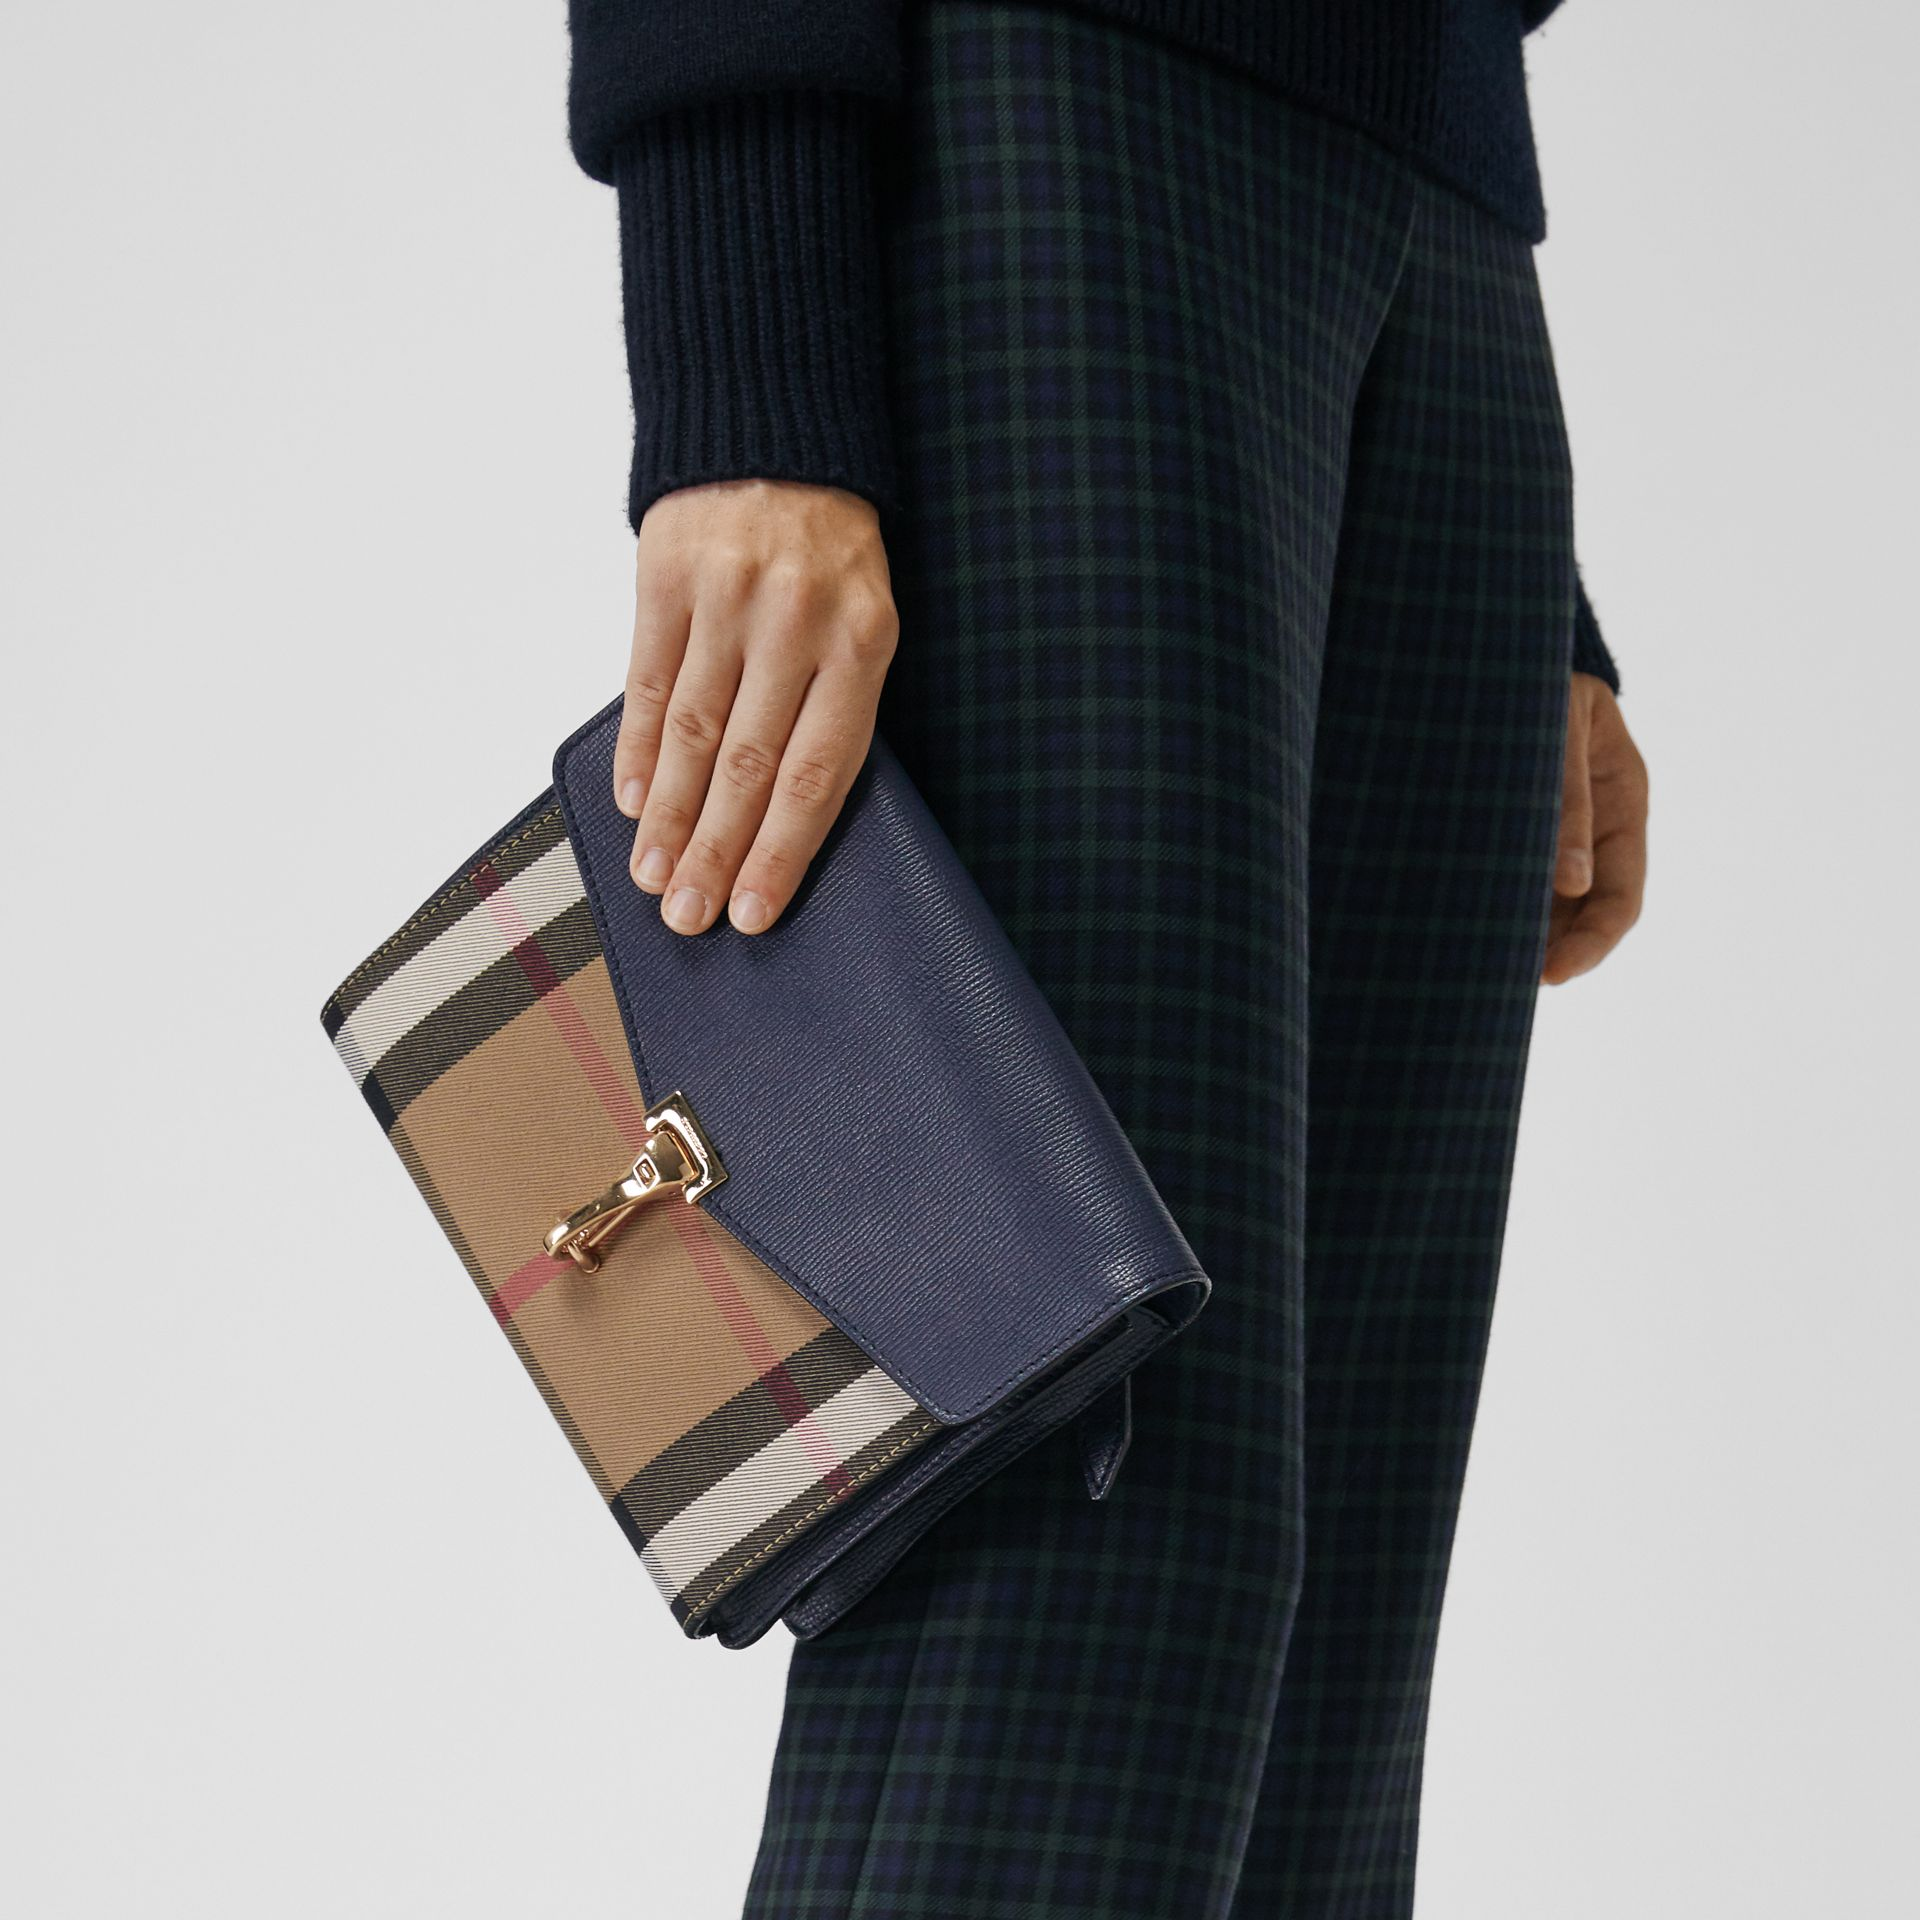 Small Leather and House Check Crossbody Bag in Ink Blue - Women | Burberry United Kingdom - gallery image 3